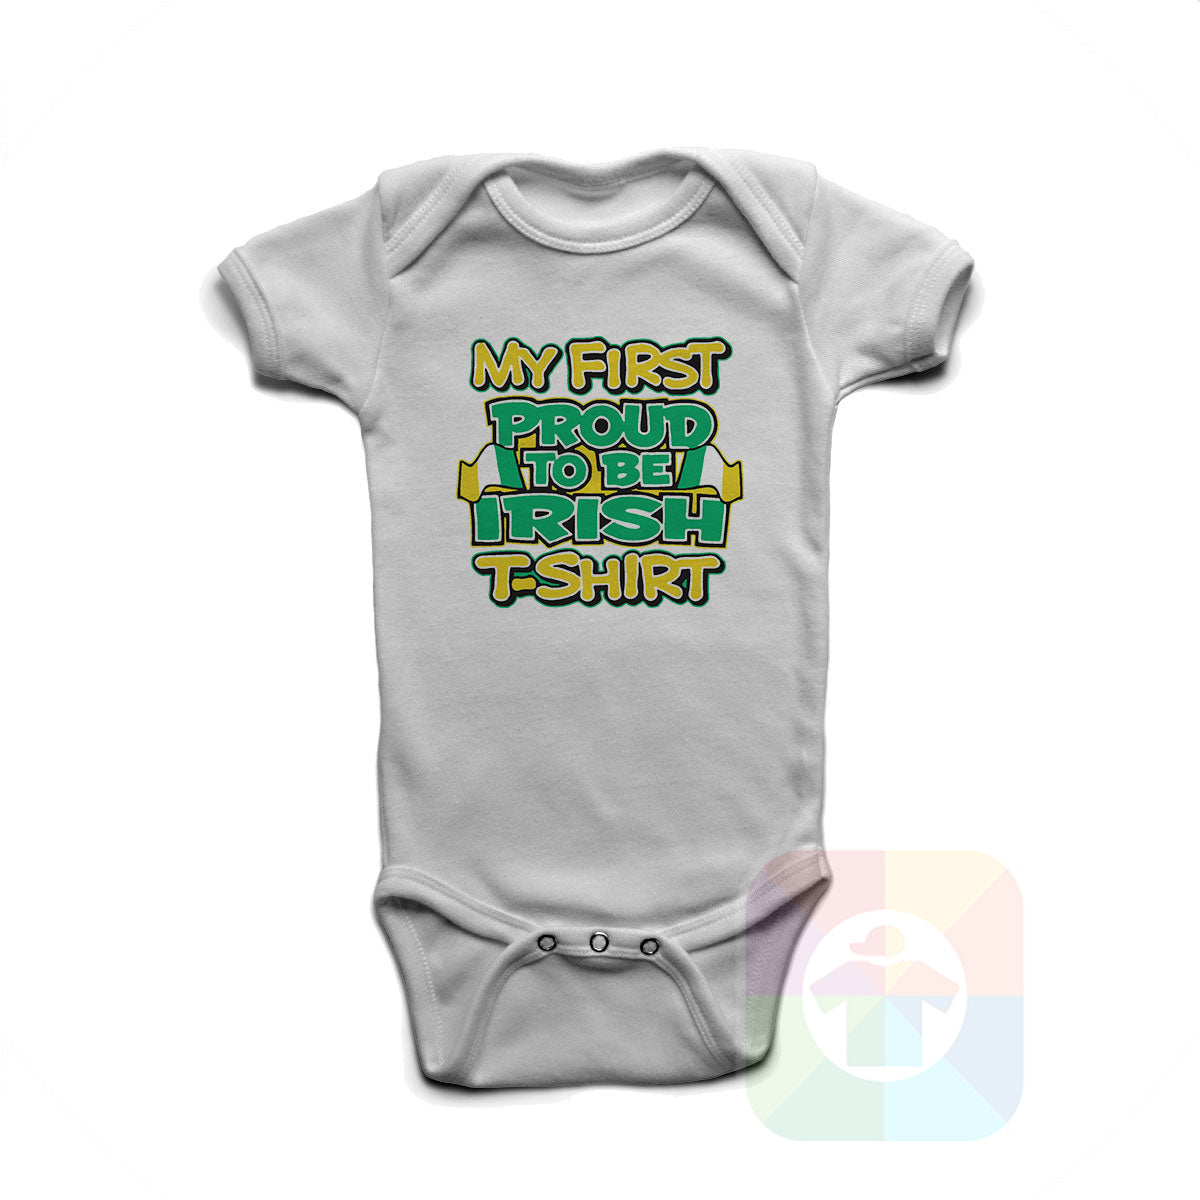 A WHITE Baby Onesie with the  ' Baby onesie 'MY FIRST PROUD TO BE IRISH TSHIRT' kids funny novelty design. #8271 / New Born, 6m, 12m, 24m Sizes ' design.